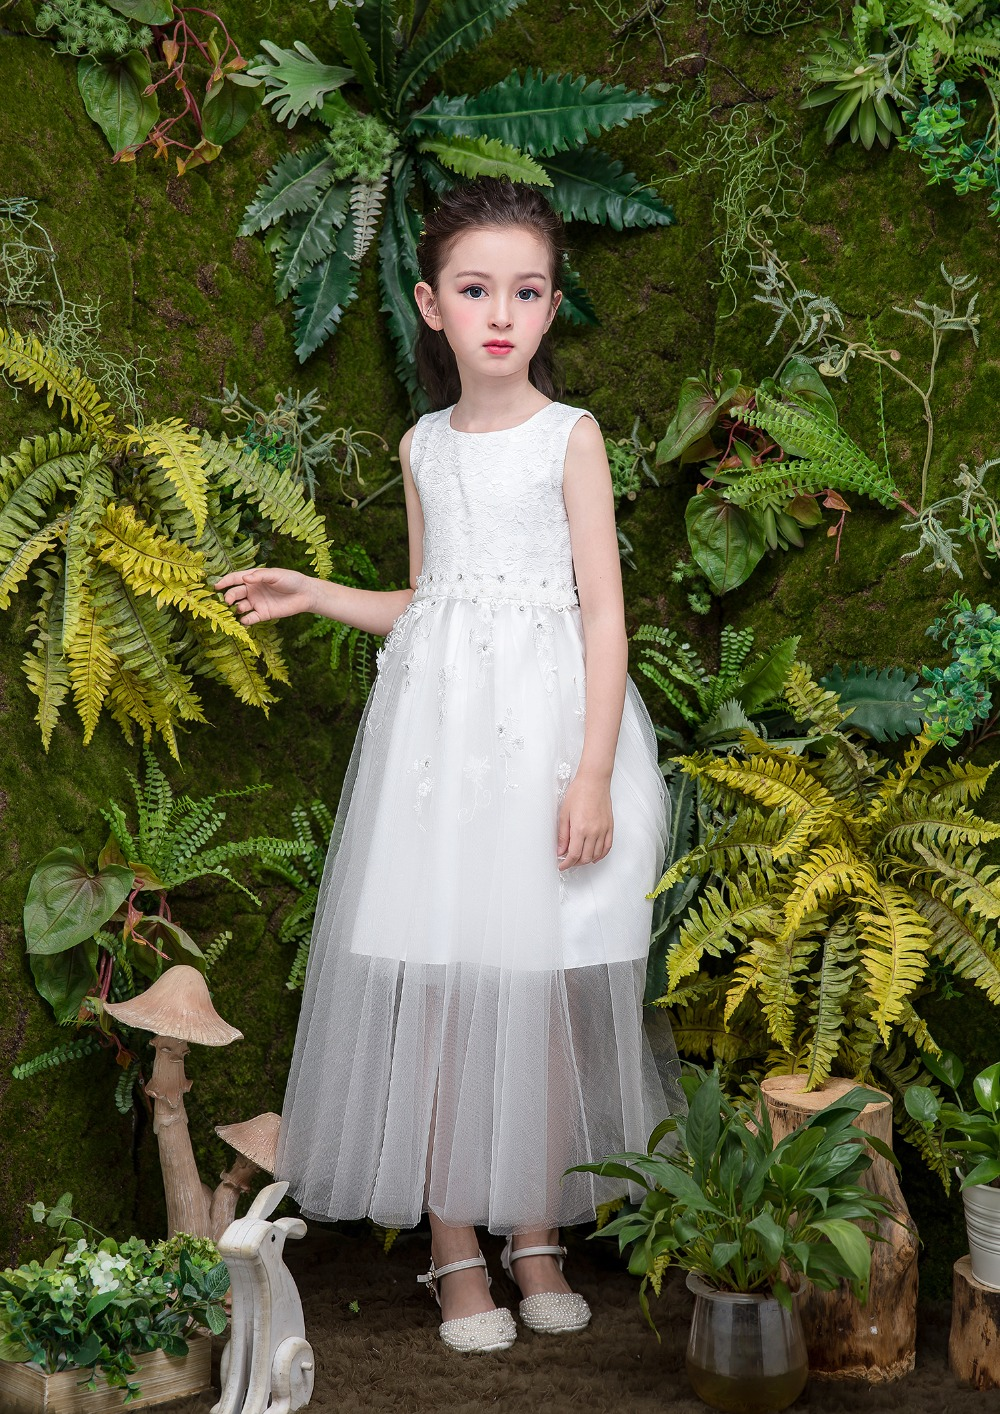 Girls Long Dress Fashion Trend Casual Dress for Girl Tunic Lace Floral Summer Maxi Dress Kids Party Princess Dresses купить недорого в Москве